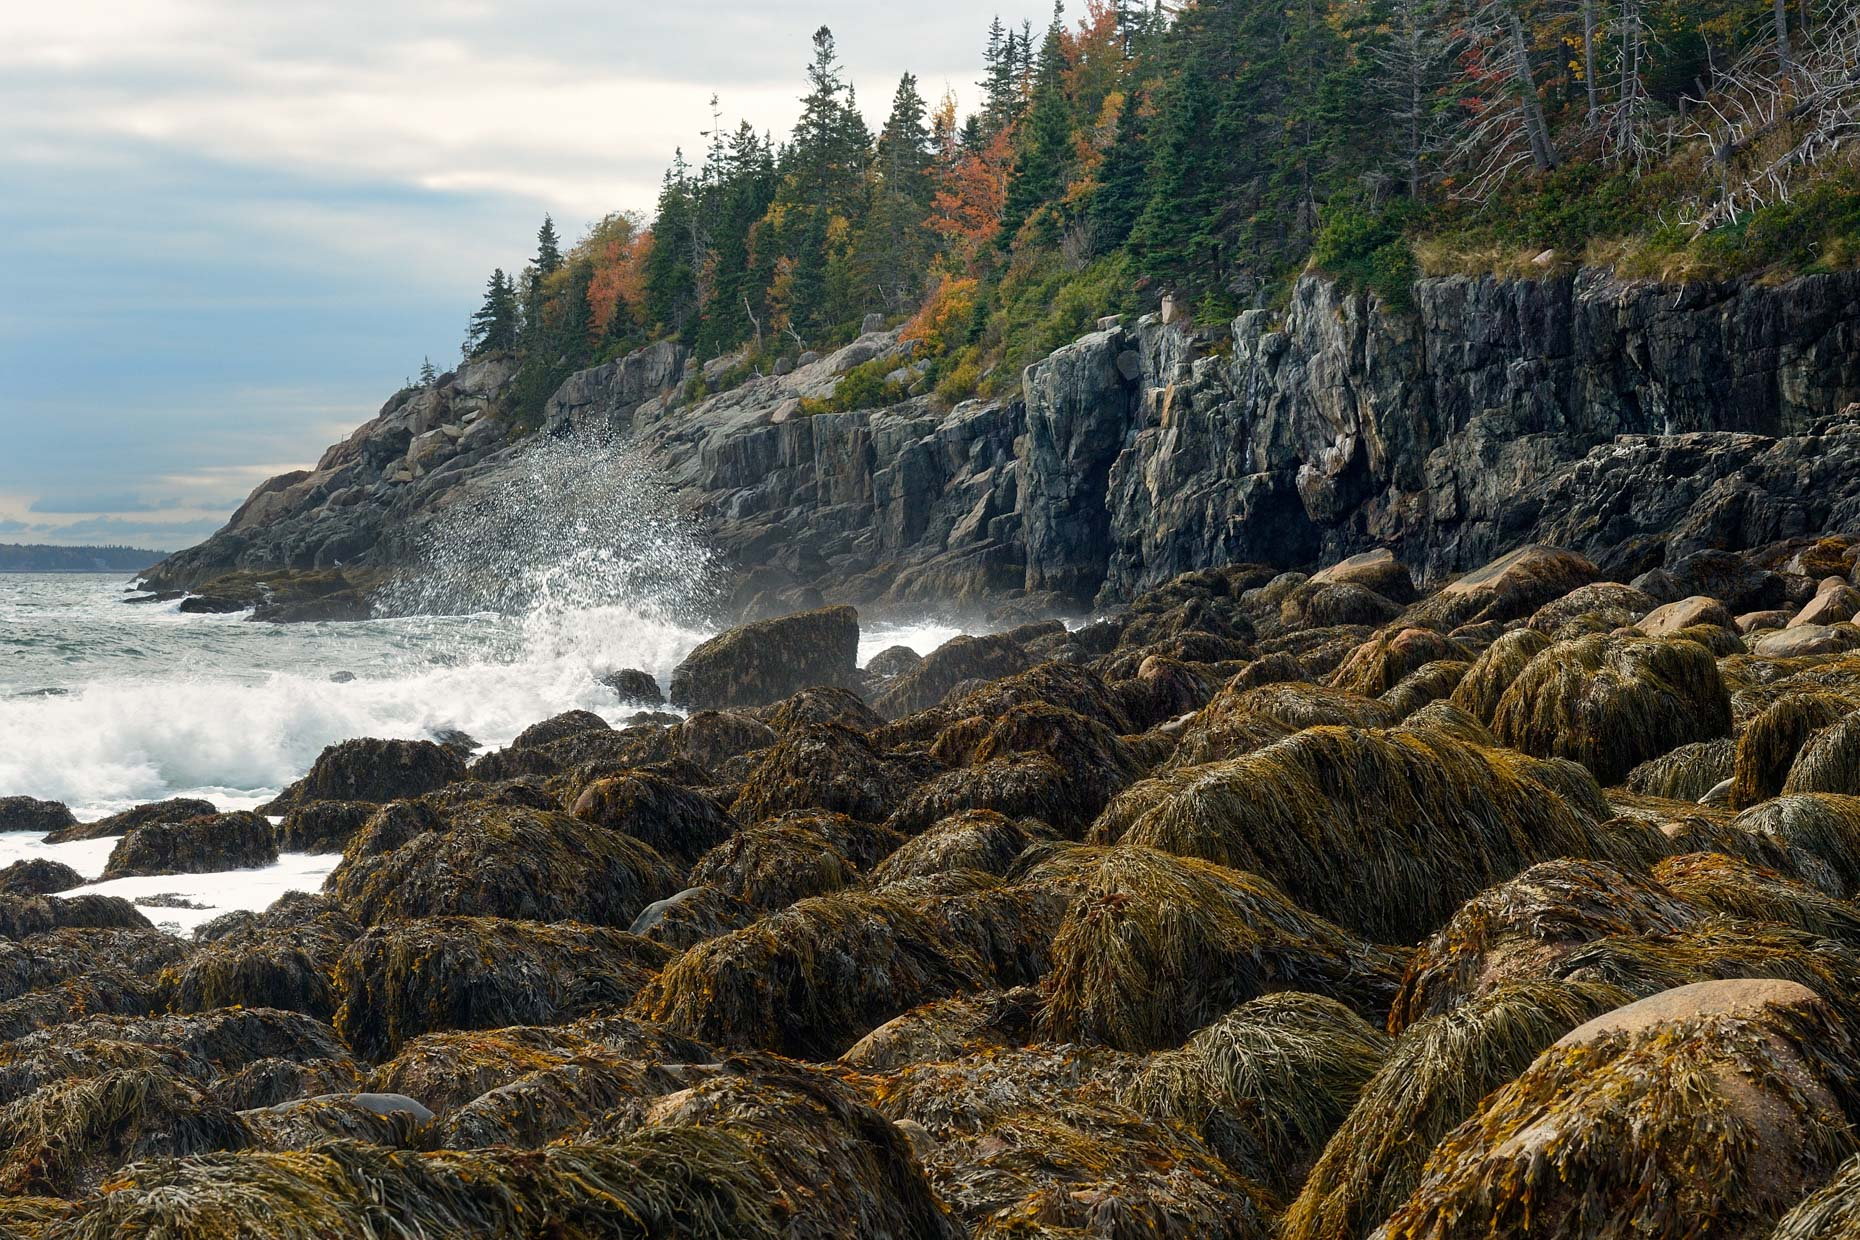 Wild Maine Coastline (Acadia National Park)